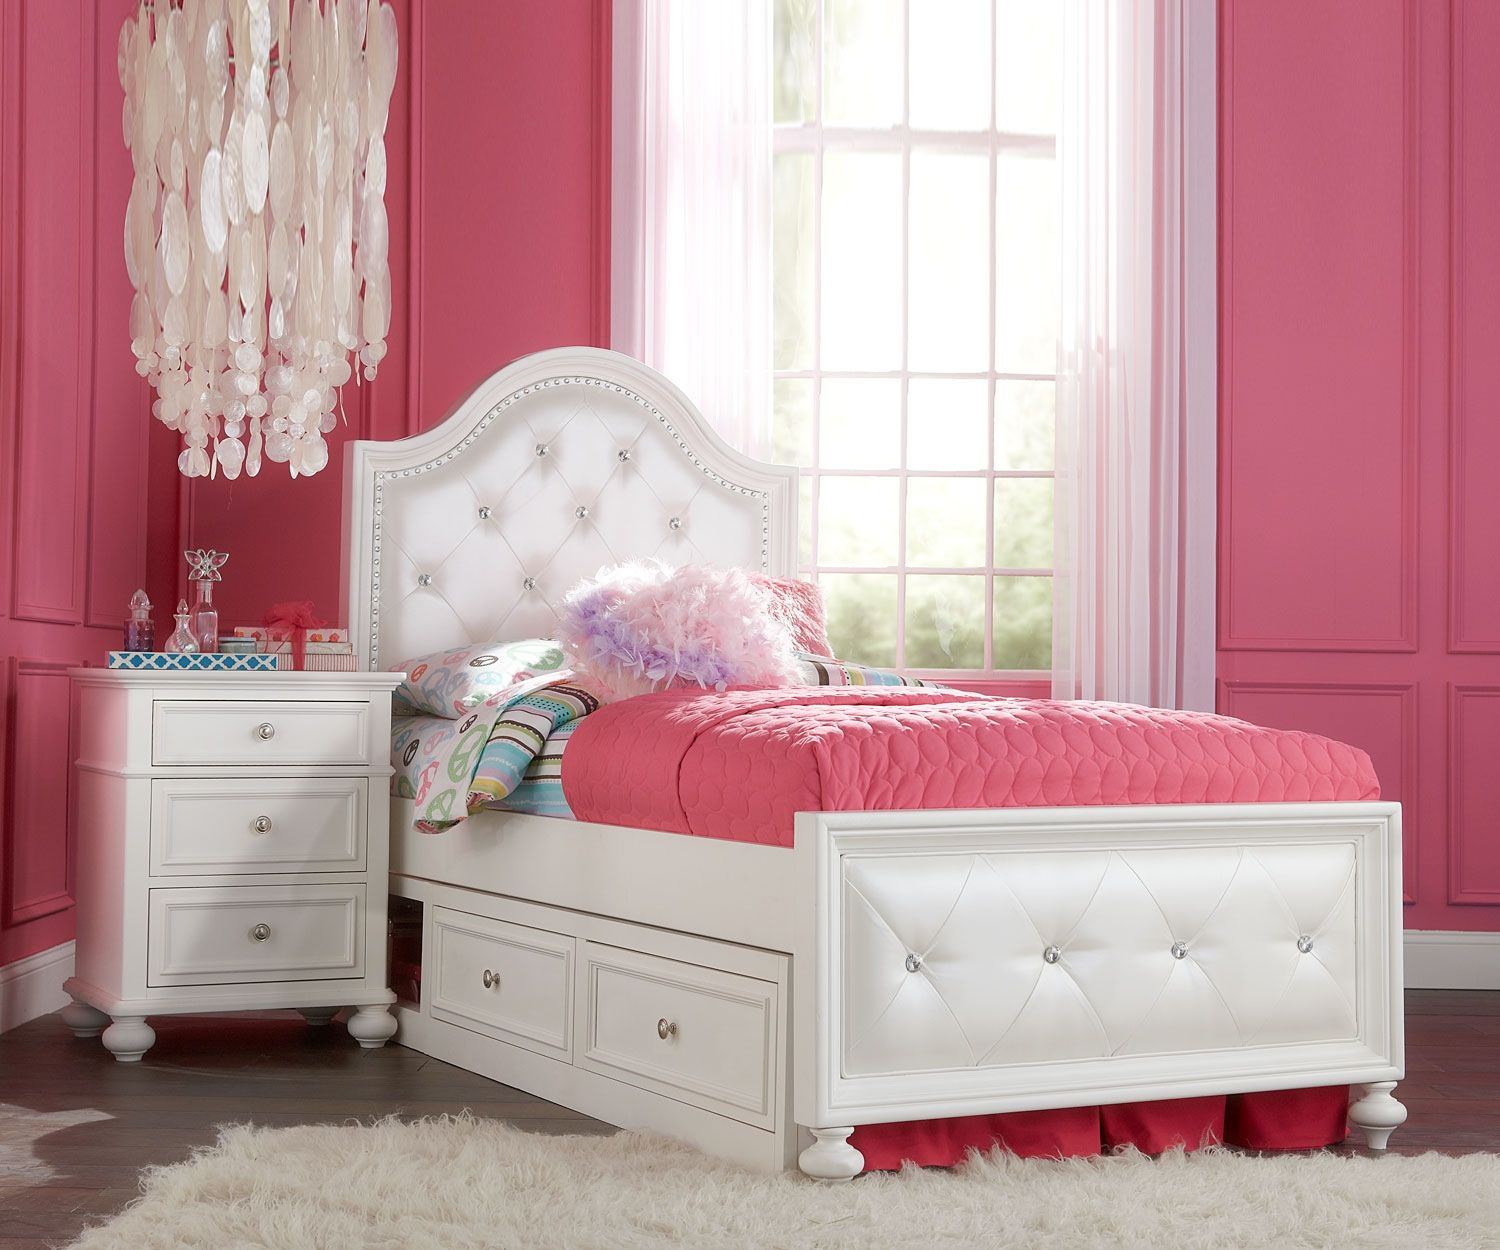 Madison Upholstered Bed Twin Size 2830 4703k Legacy Classic Kids Girls Bedroom Furniture Upholstered Beds Girls Bedroom Furniture Girls Bedroom Sets